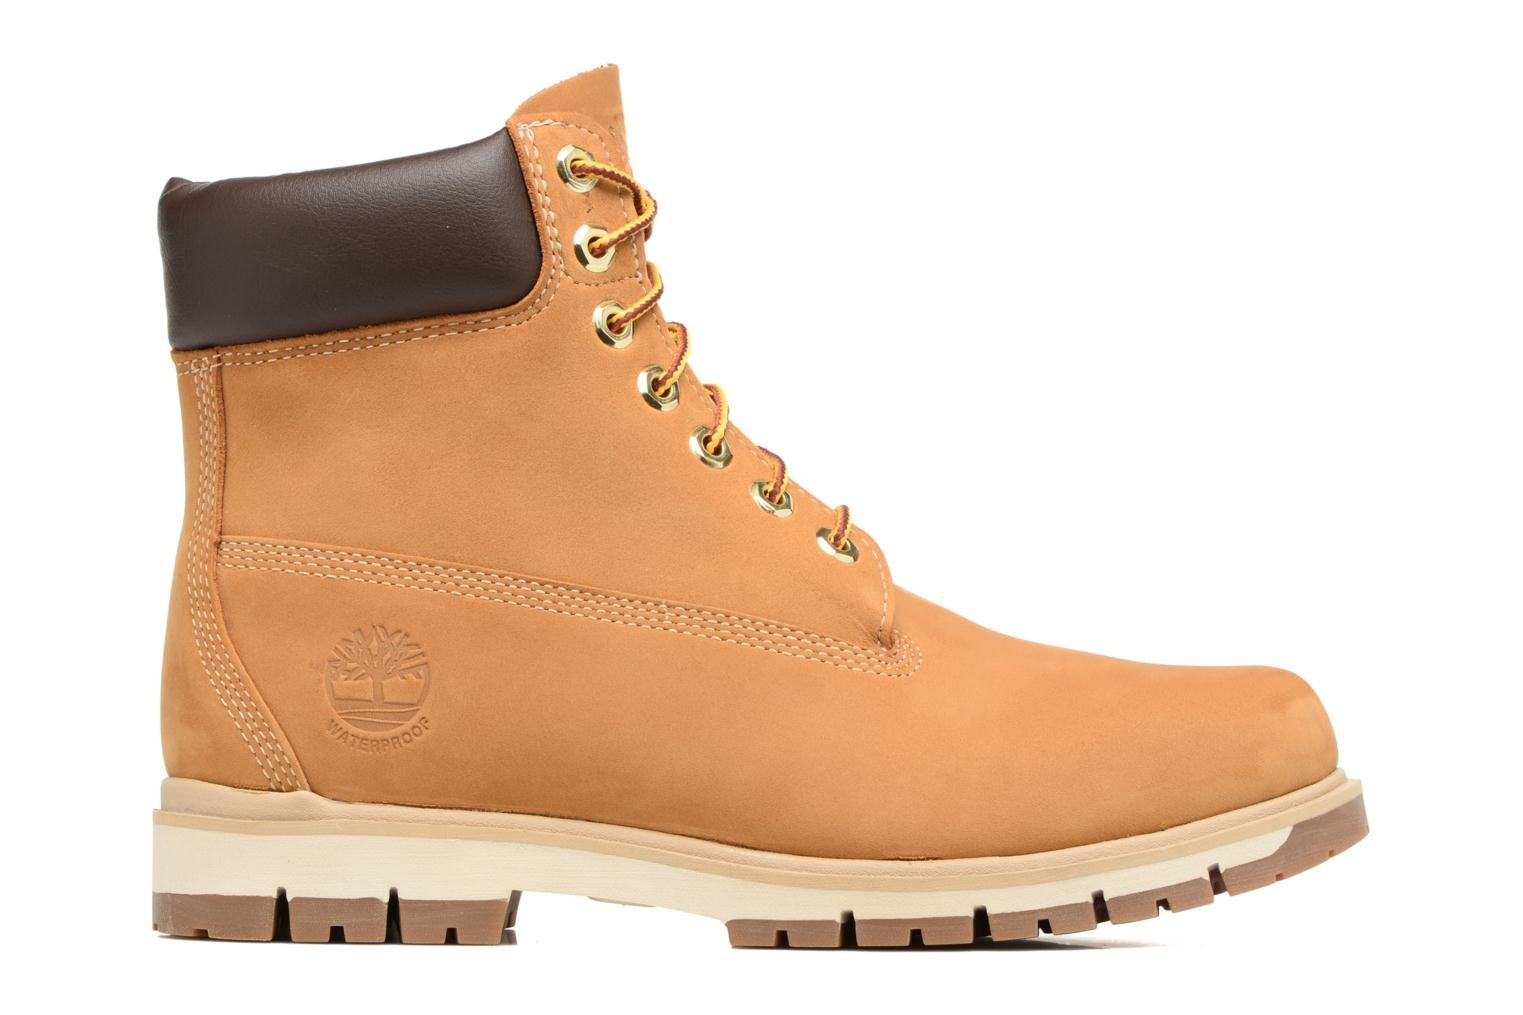 "Radford 6"" Boot WP Wheat waterbuck"